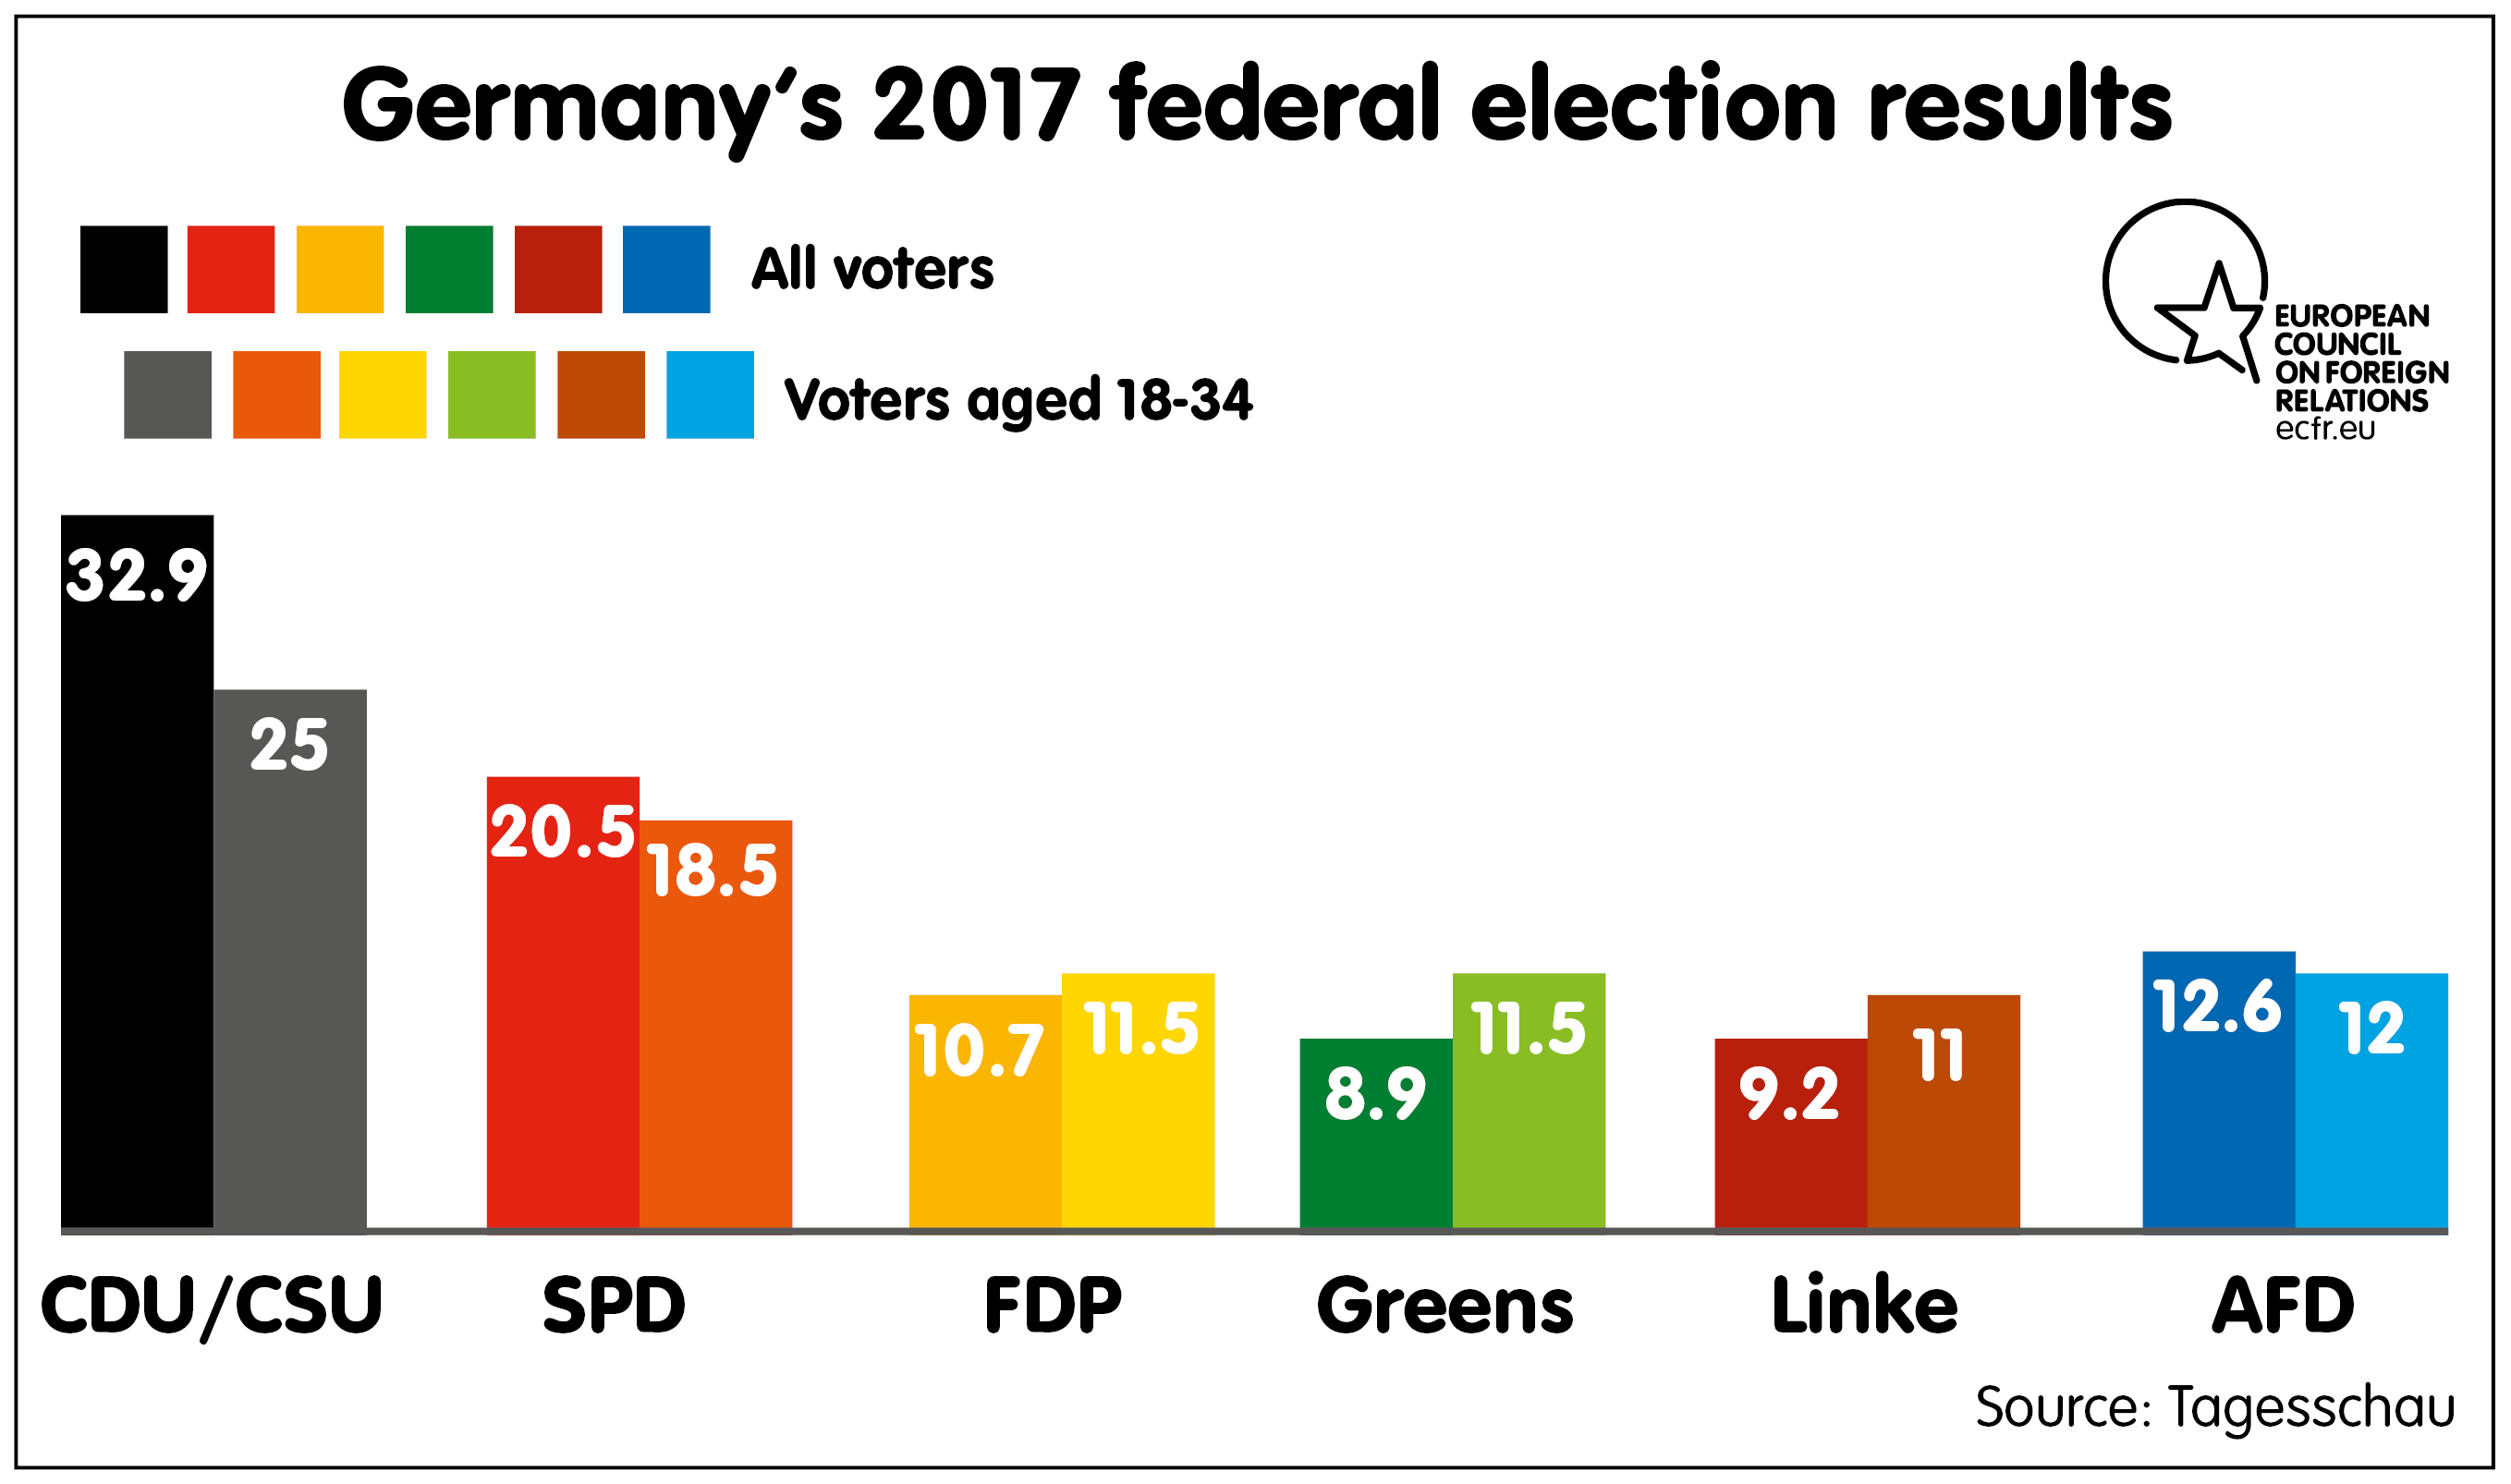 Germany's 2017 Federal election results